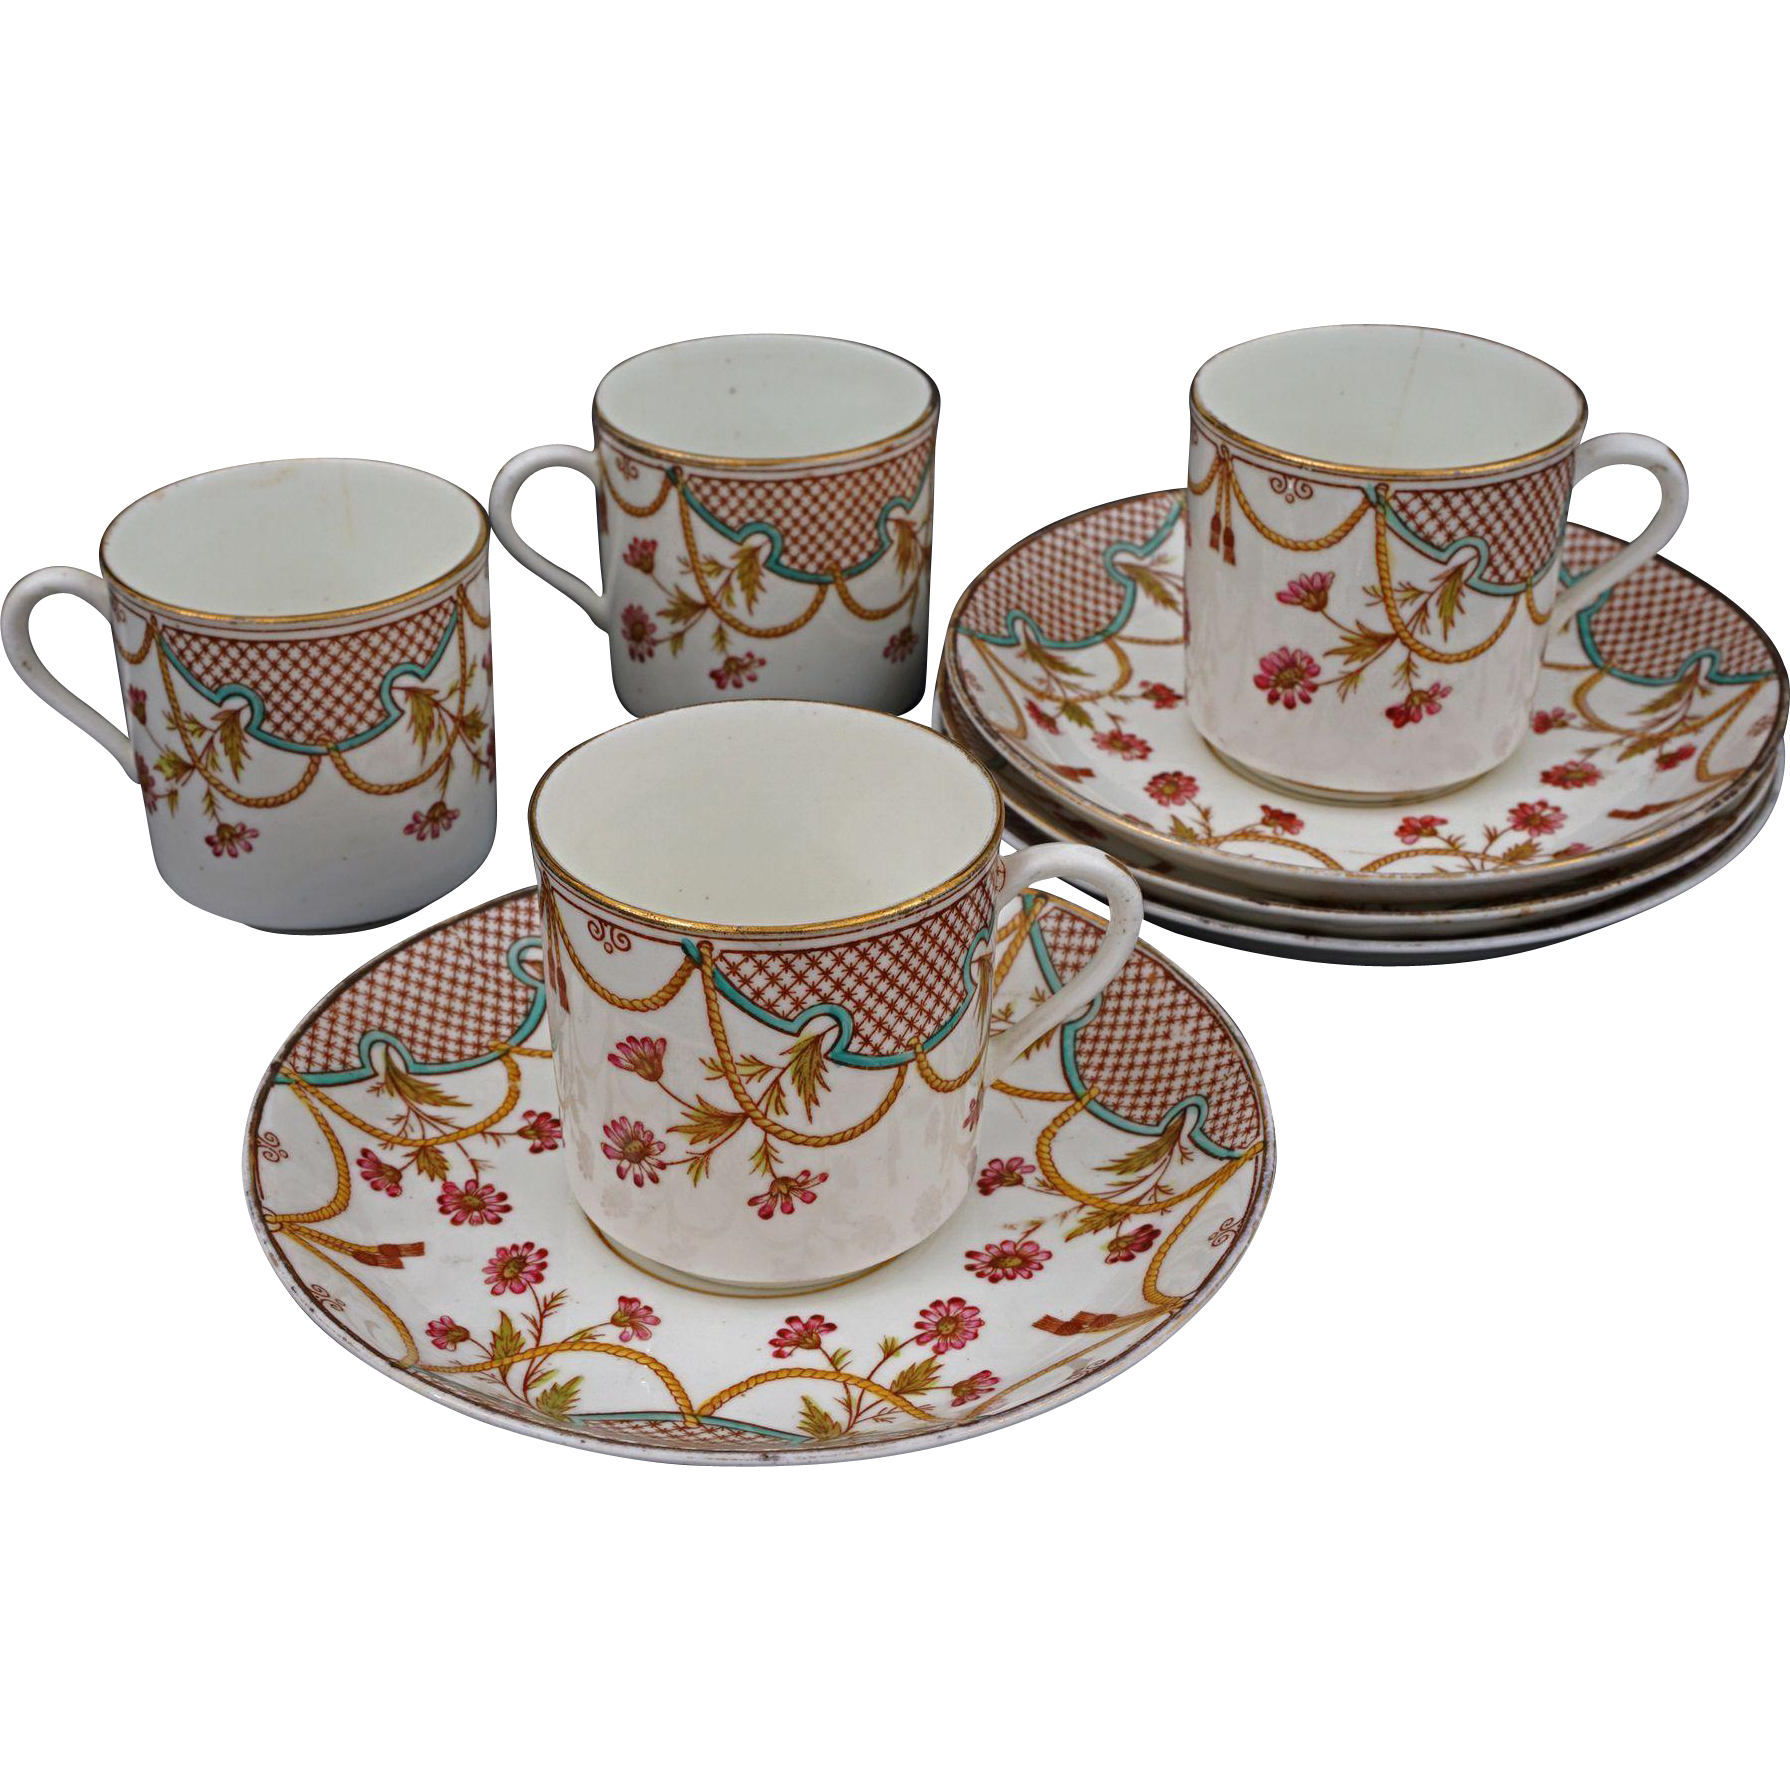 Set of Four W&B Demitasse Cups and Saucers Antique Porcelain - 1889, England